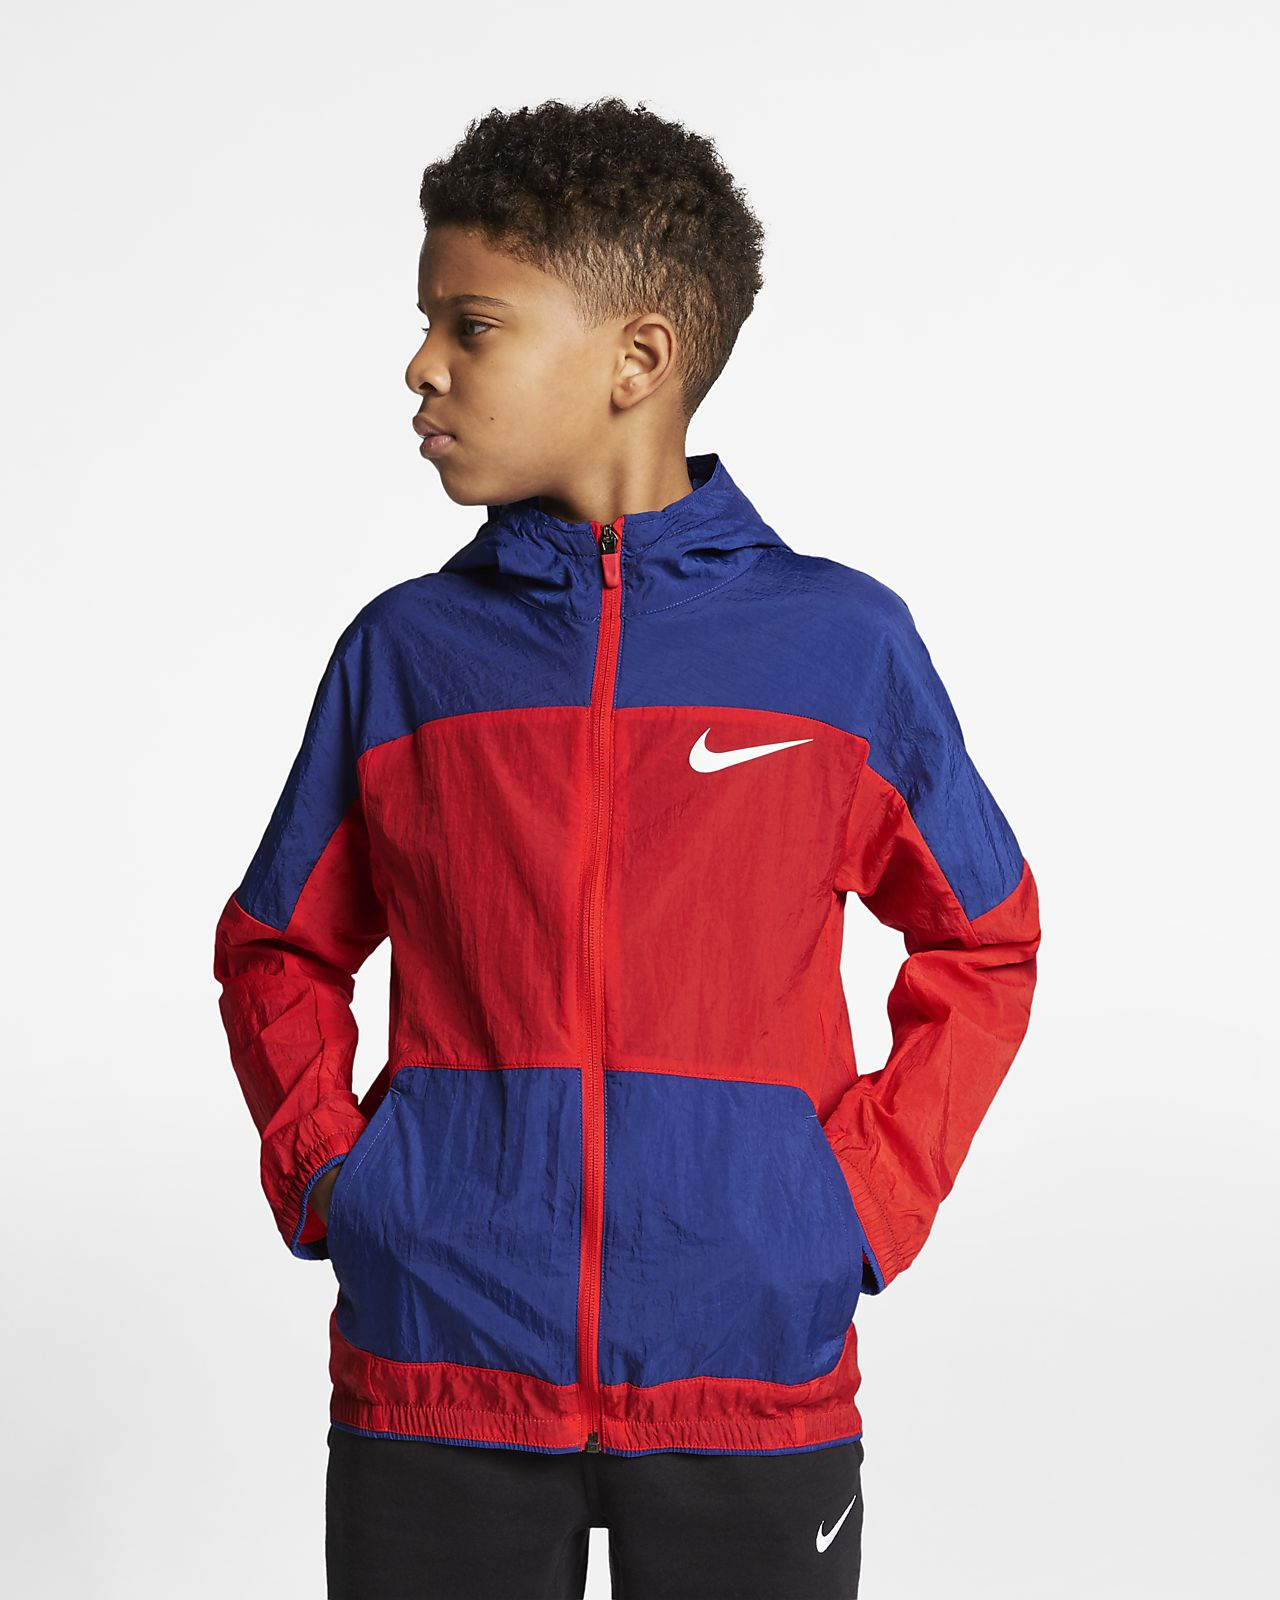 Nike Dri-FIT Big Kids' Woven Training Jacket